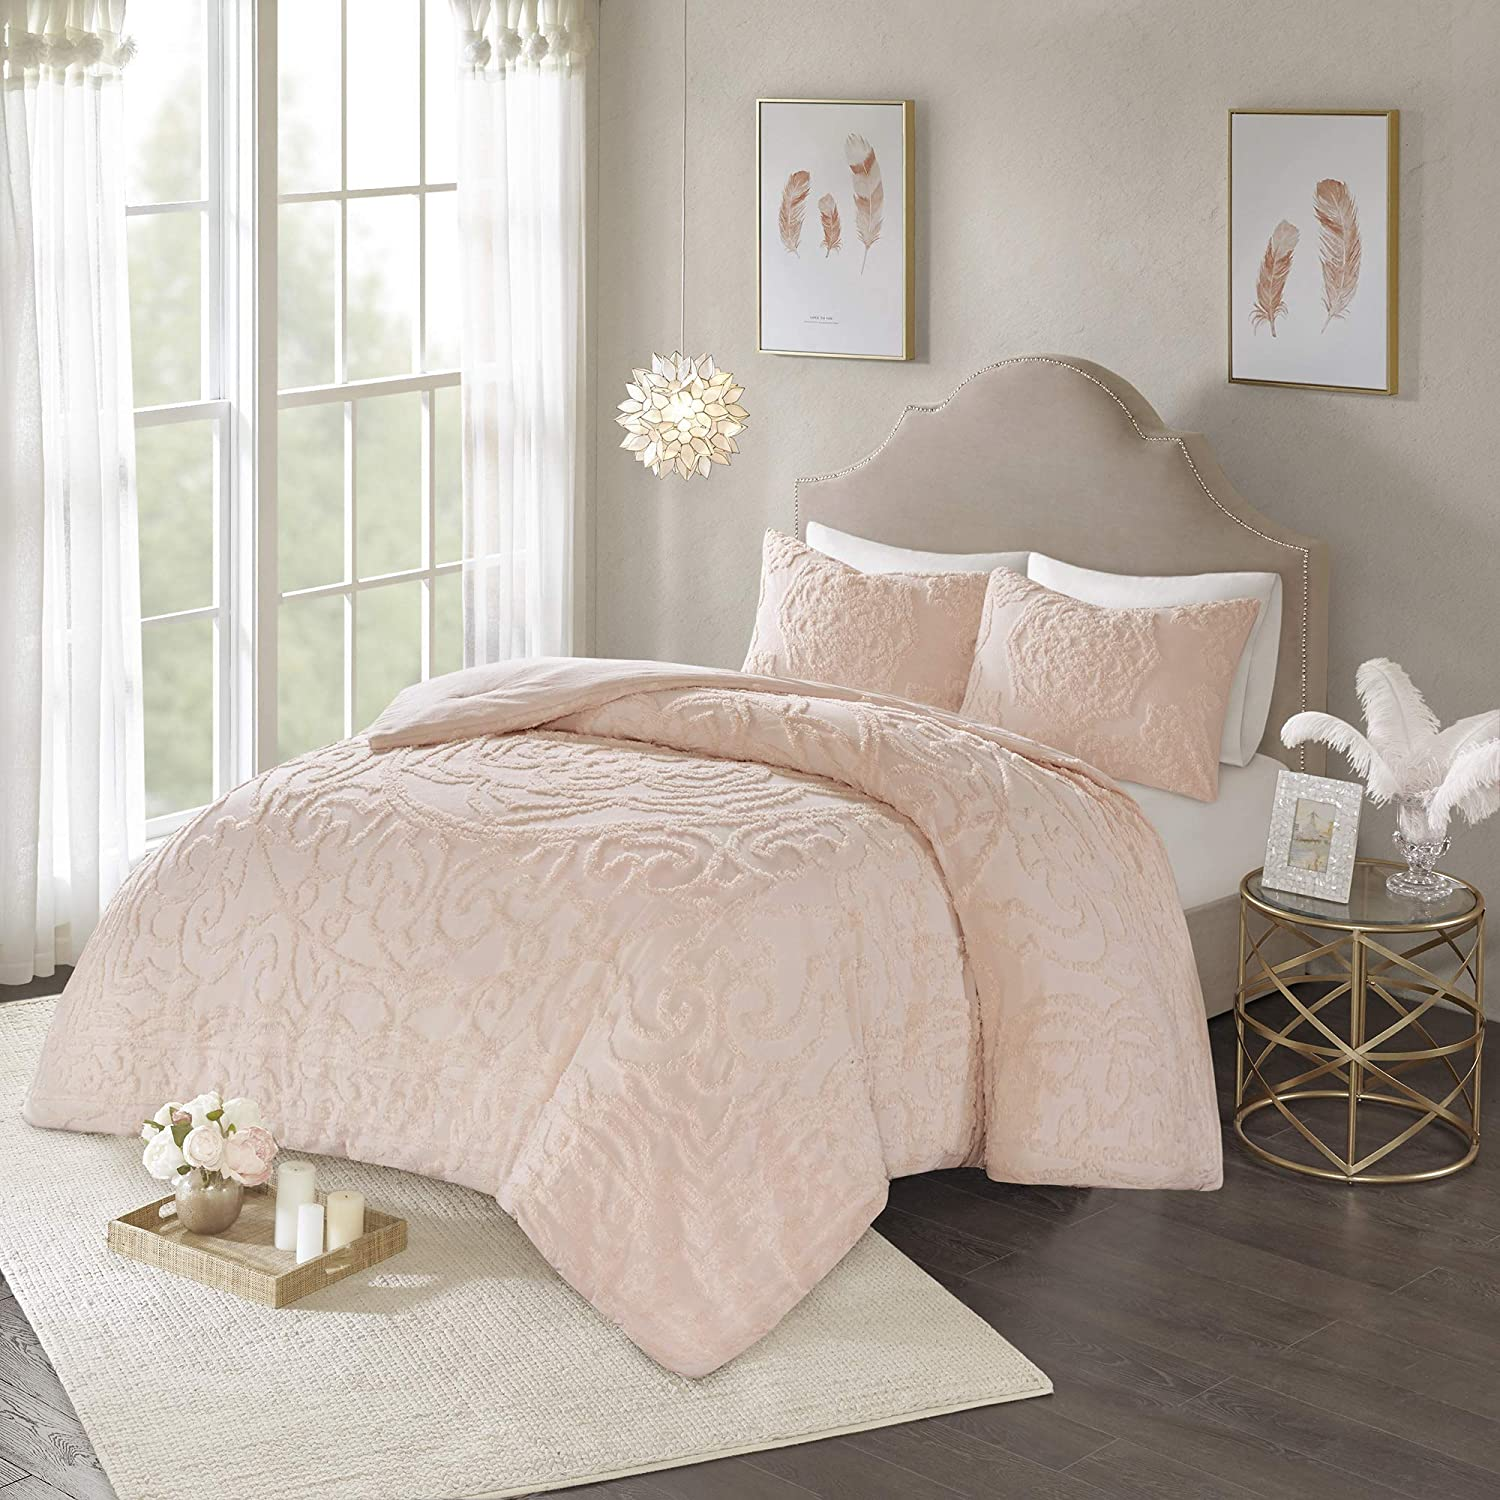 Madison Park Laetitia Comforter Reversible Cotton Chenille Flower Floral Botanical Medallion Tufted Fringe Soft Overfilled Down Alternative Hypoallergenic All Season Bedding-Set, Queen, Blush